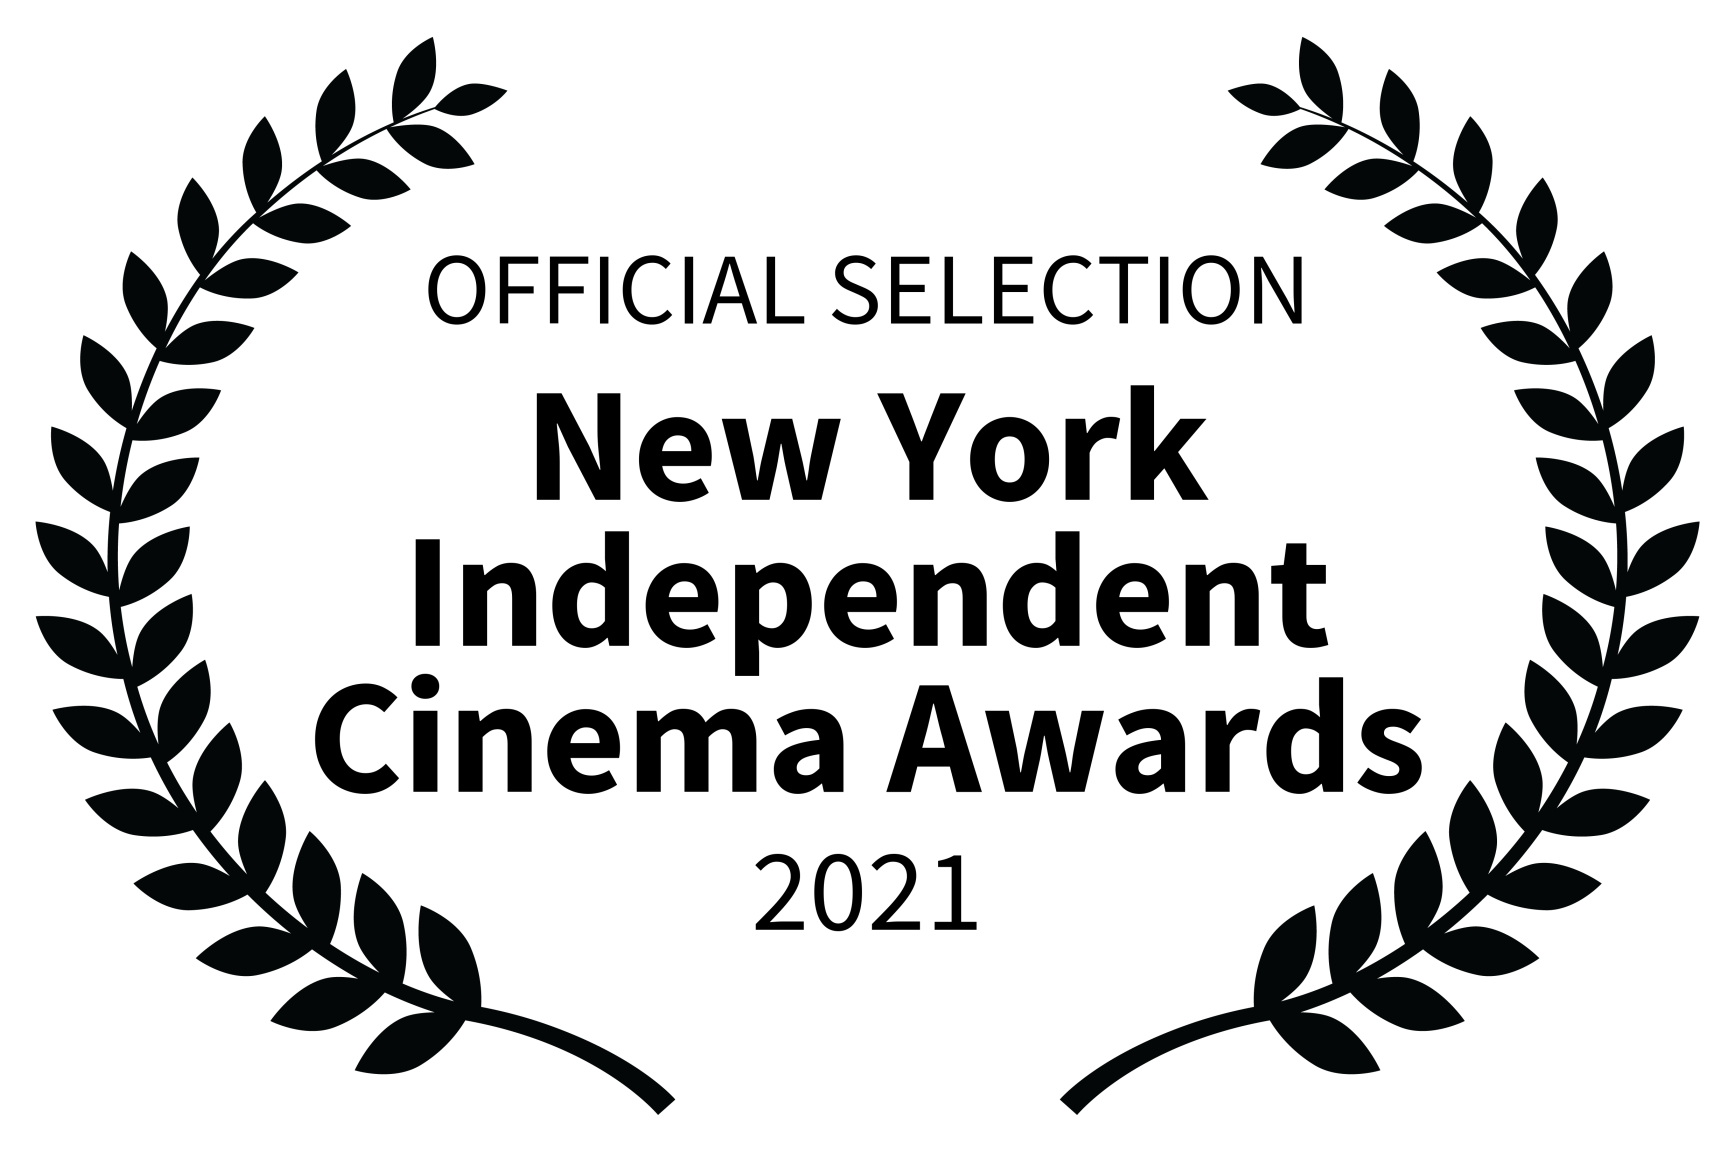 OFFICIAL SELECTION - New York Independent Cinema Awards - 2021